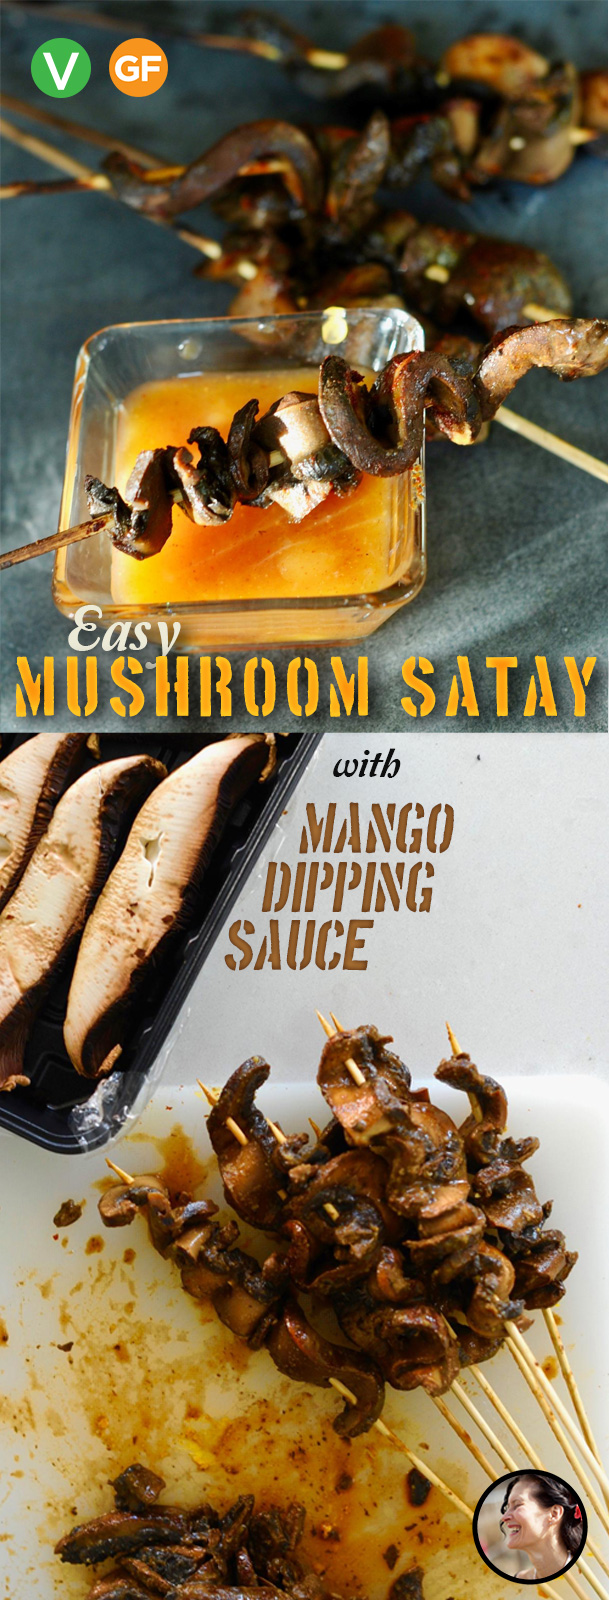 Easy Mushroom Satay with Mango Dipping Sauce, Vegan and GF #10 ingredient